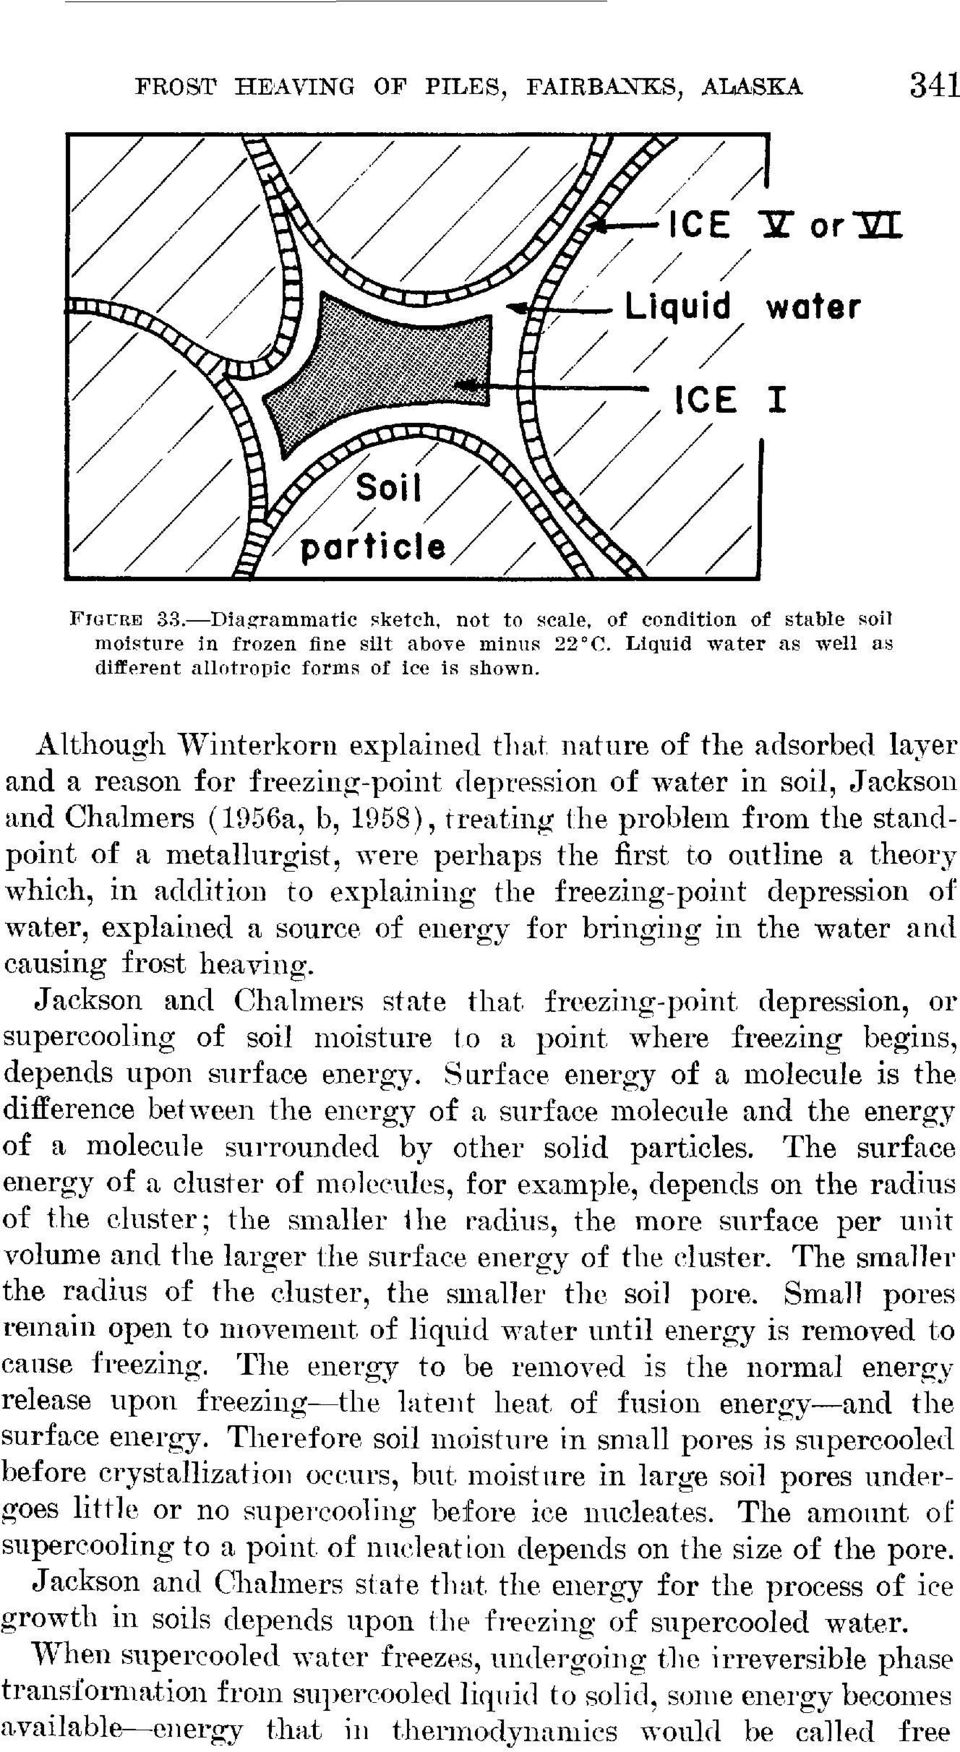 Although Winterkorn explained that nature of the adsorbed layer and a reason for freezing-point depression of water in soil, Jackson and Chalmers (1956a, b, 1958), treating the problem from the